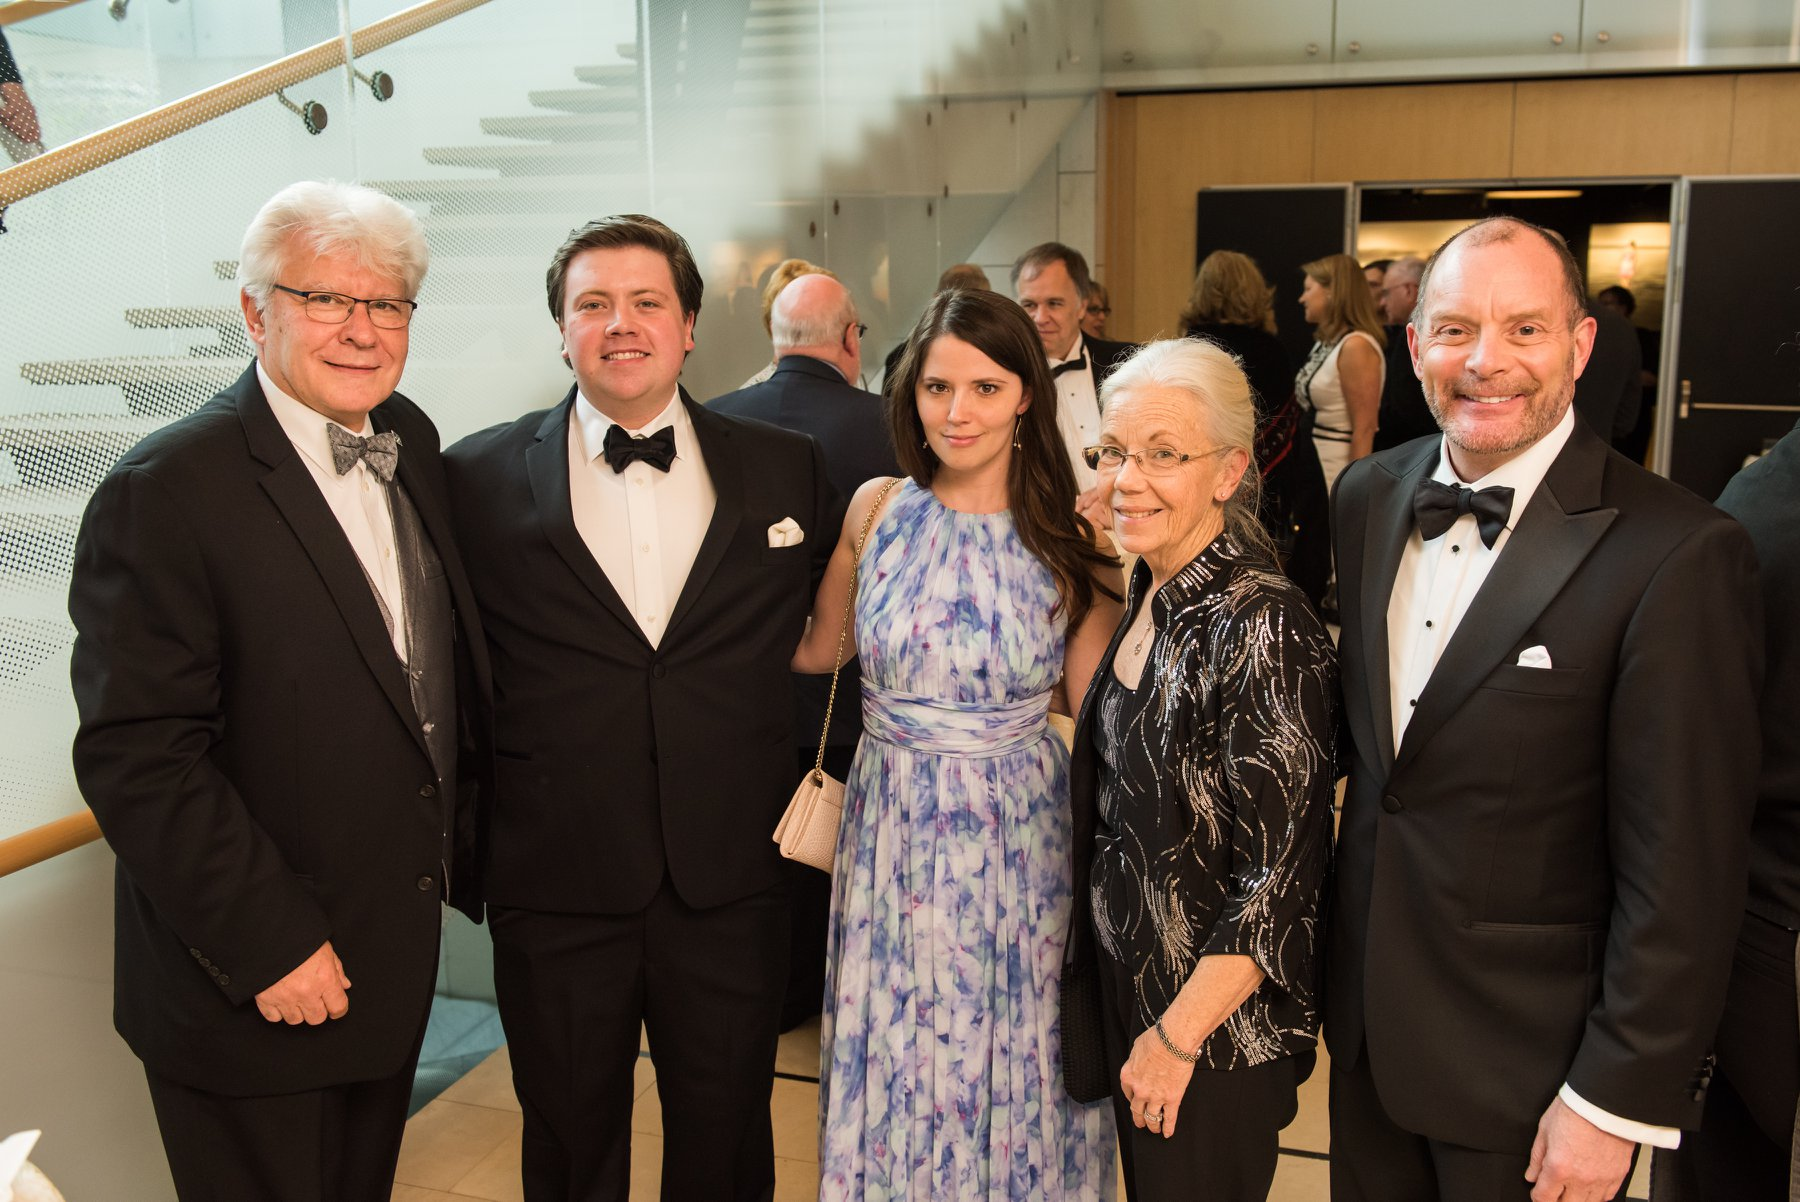 Coalition Vice President Stefan Fedor, with Niles Barnhart, Candace Greaux, Jo Anne Barnhart, Craig Engle, Magyar Foundation